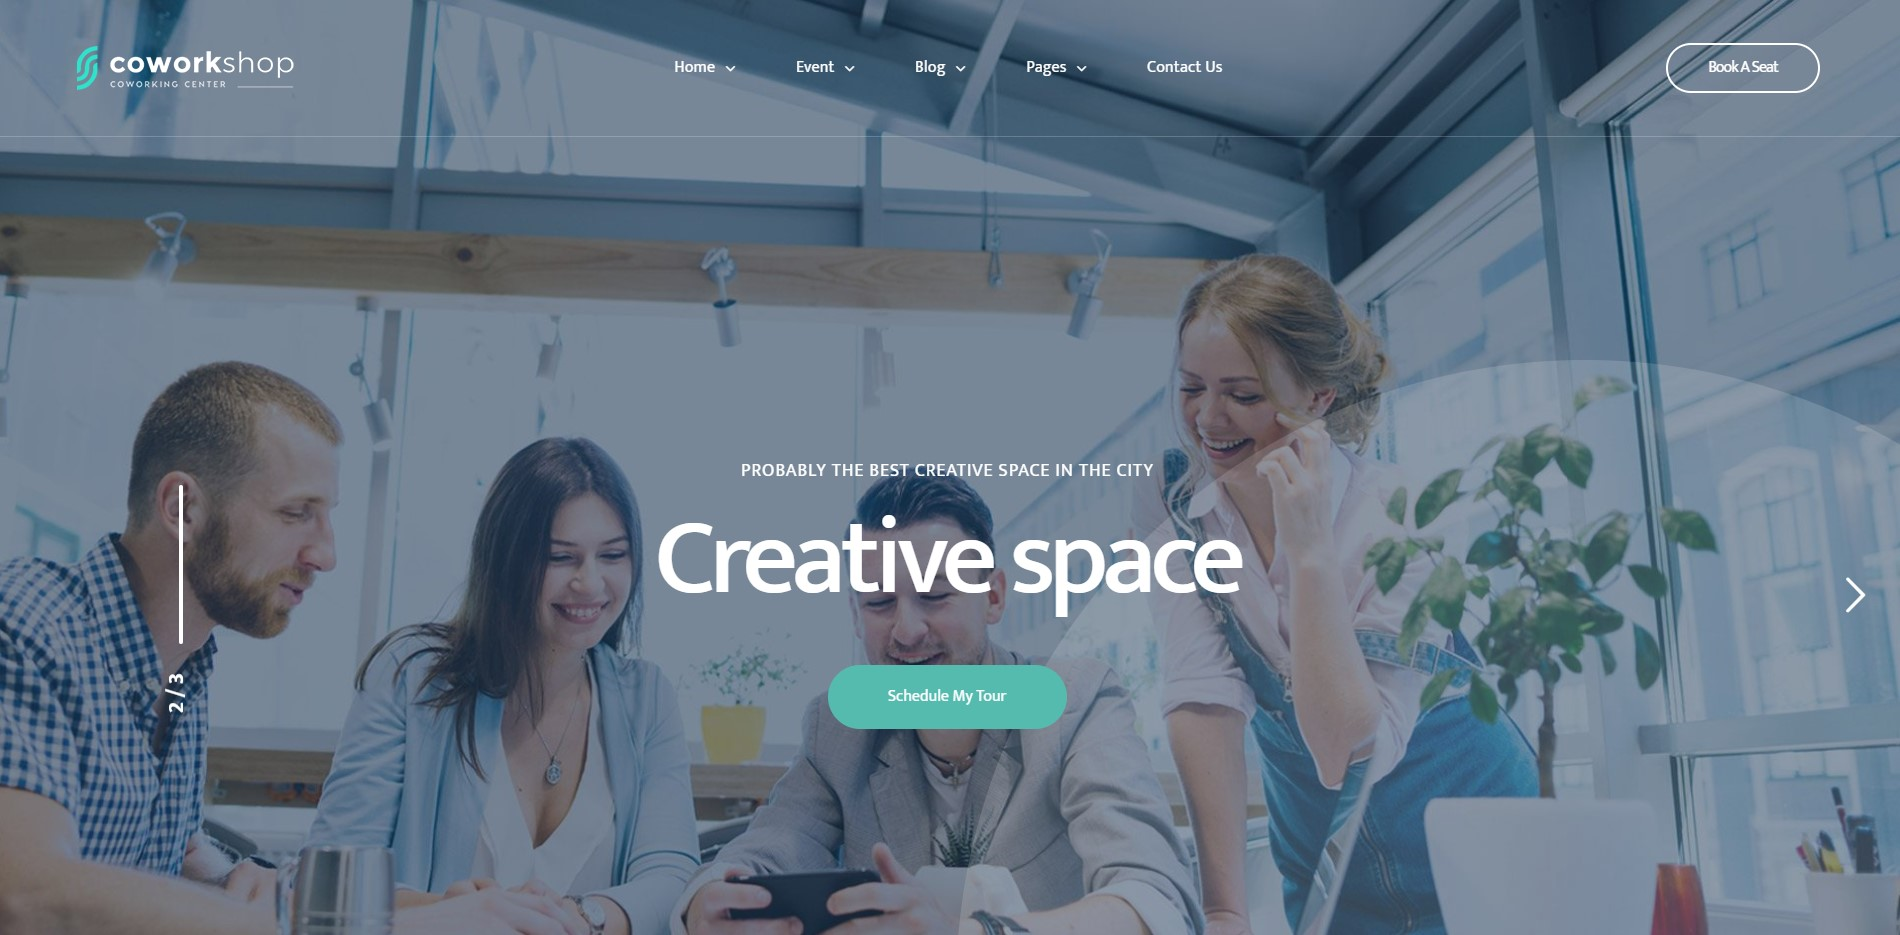 Coworkshop - Coworking Space WordPress Theme